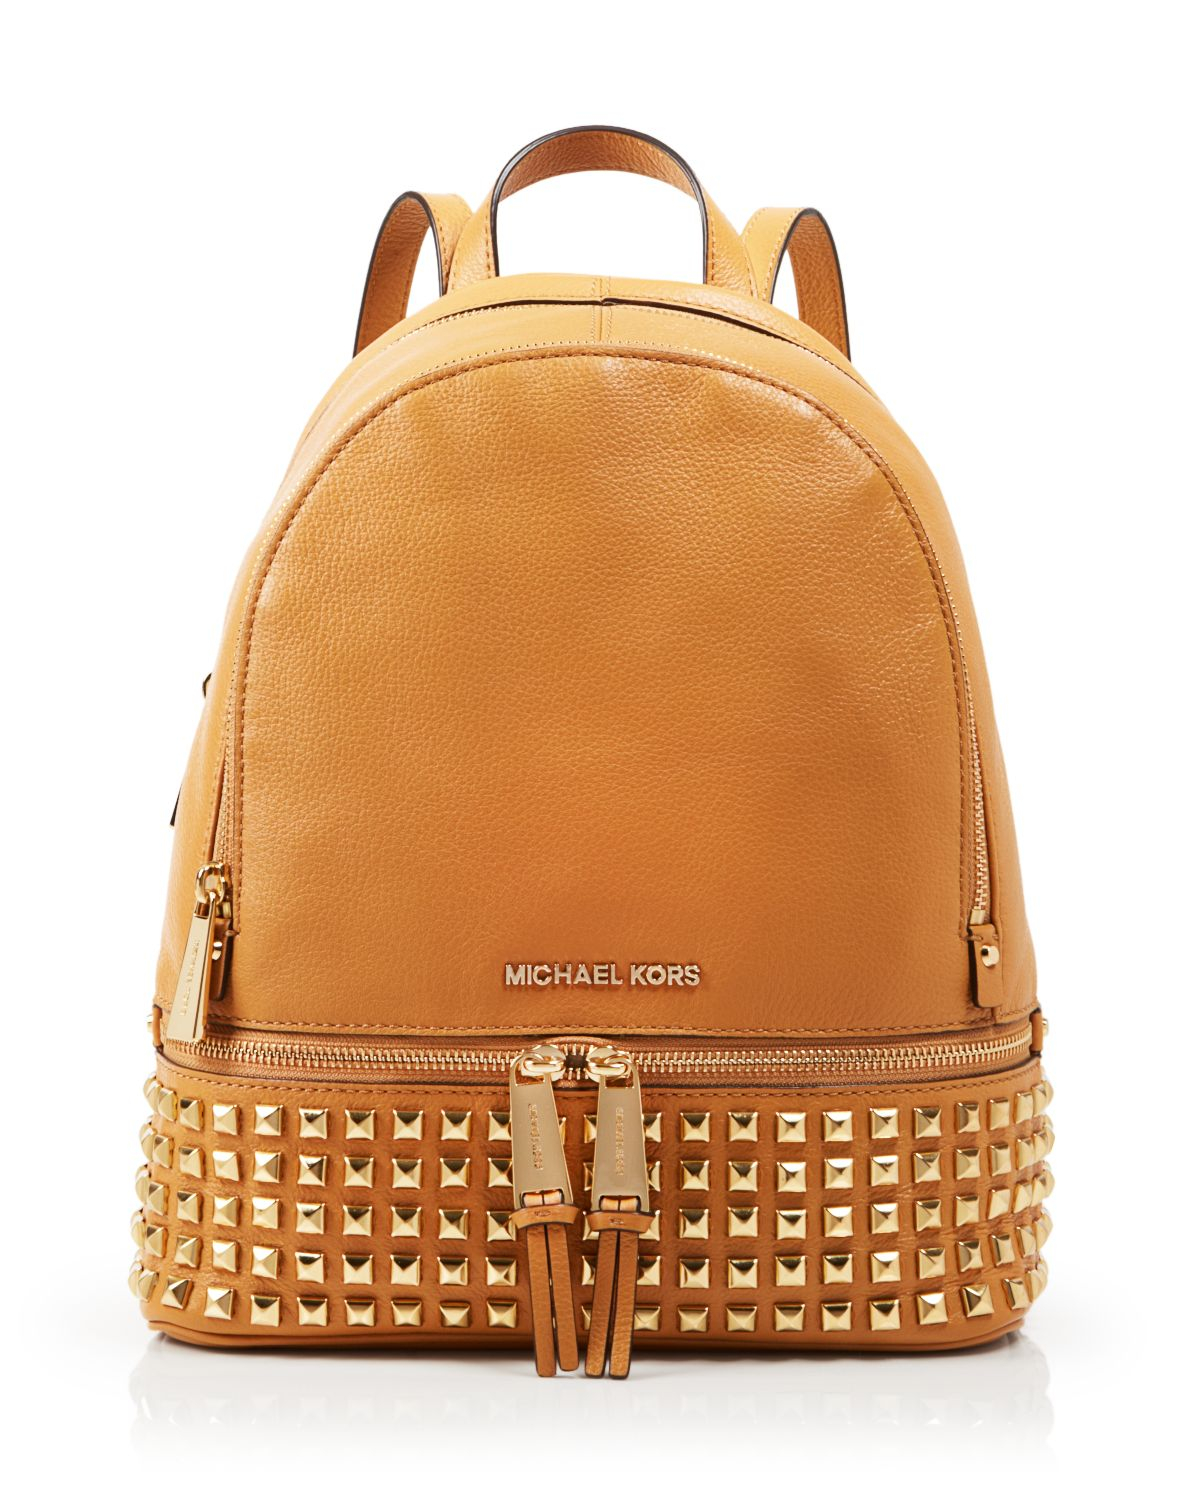 818b087540a5 Gallery. Previously sold at: Bloomingdale's · Women's Michael By Michael  Kors Rhea